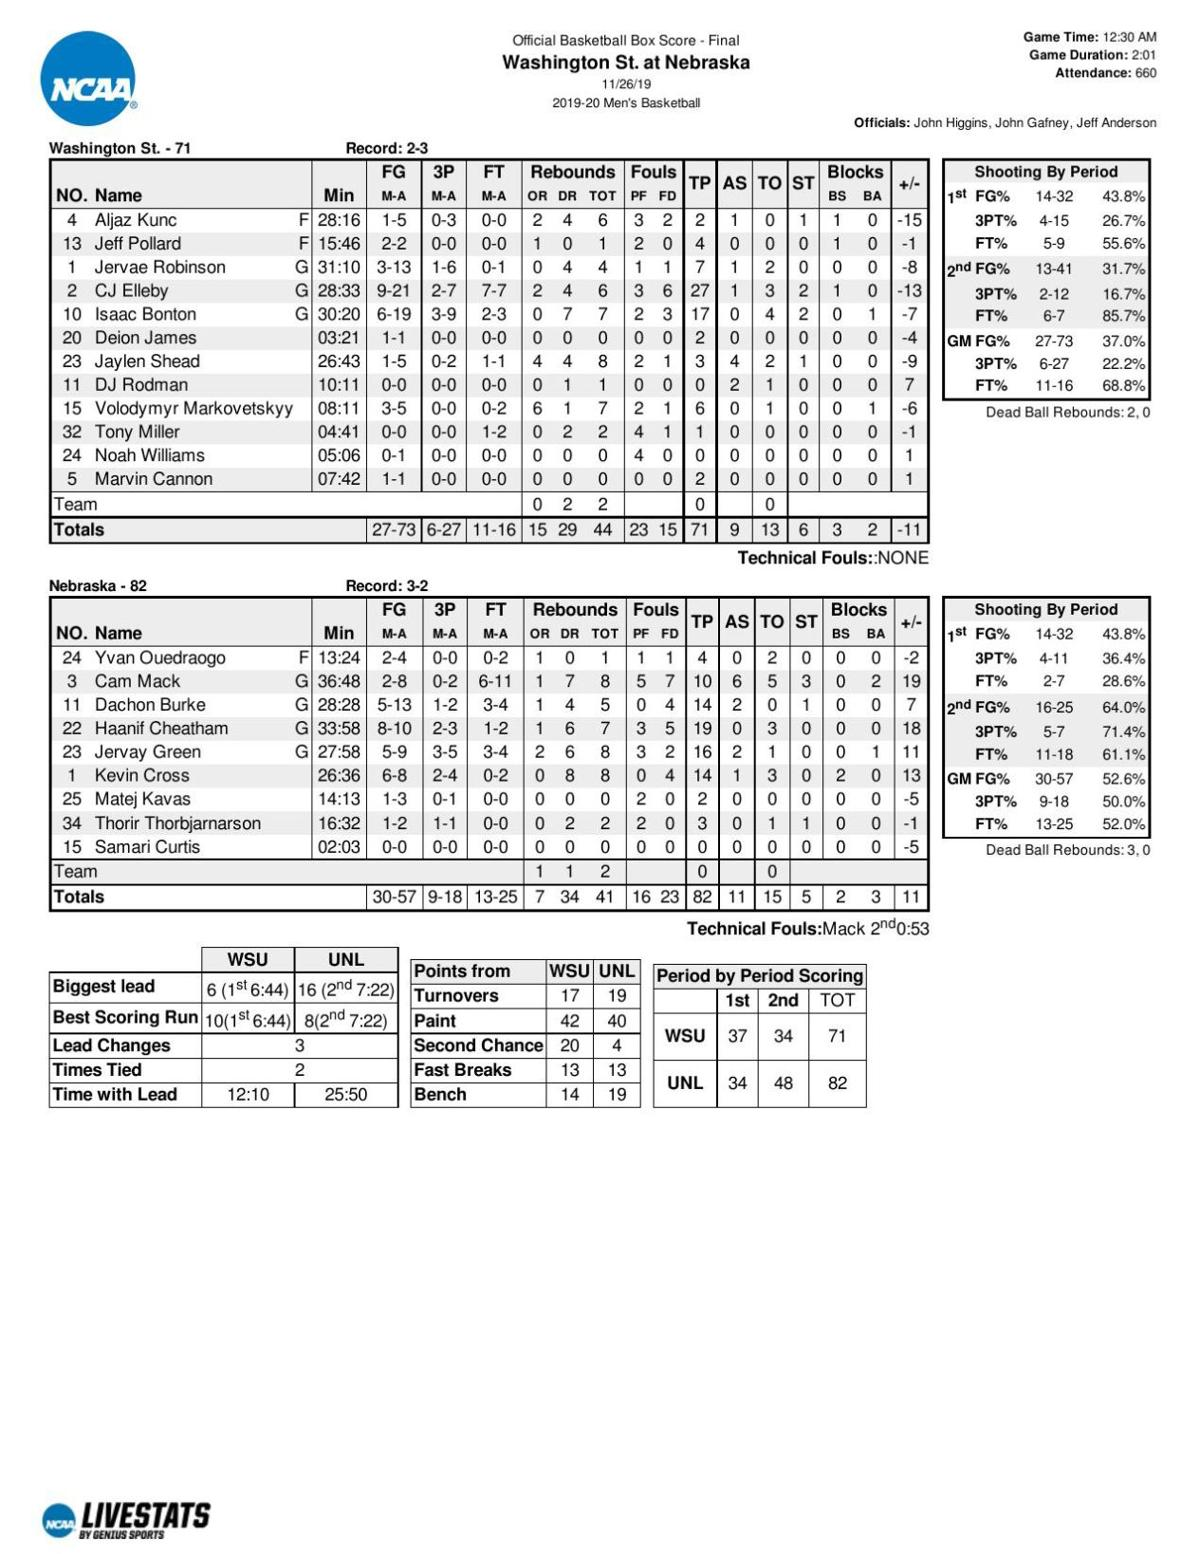 Box score: NU 82, Washington State 71